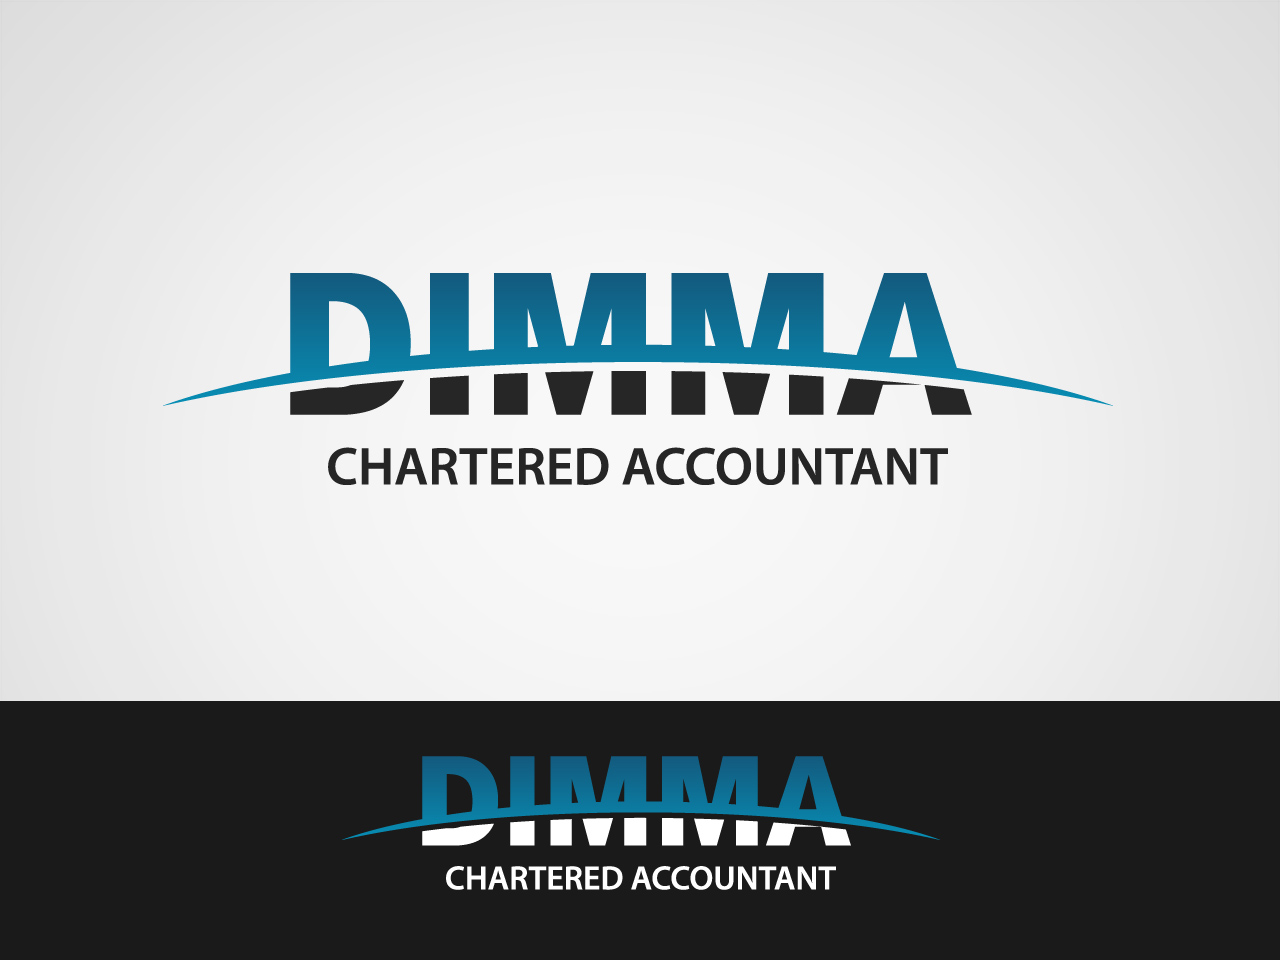 Logo Design by jpbituin - Entry No. 115 in the Logo Design Contest Creative Logo Design for Dimma Chartered Accountant.